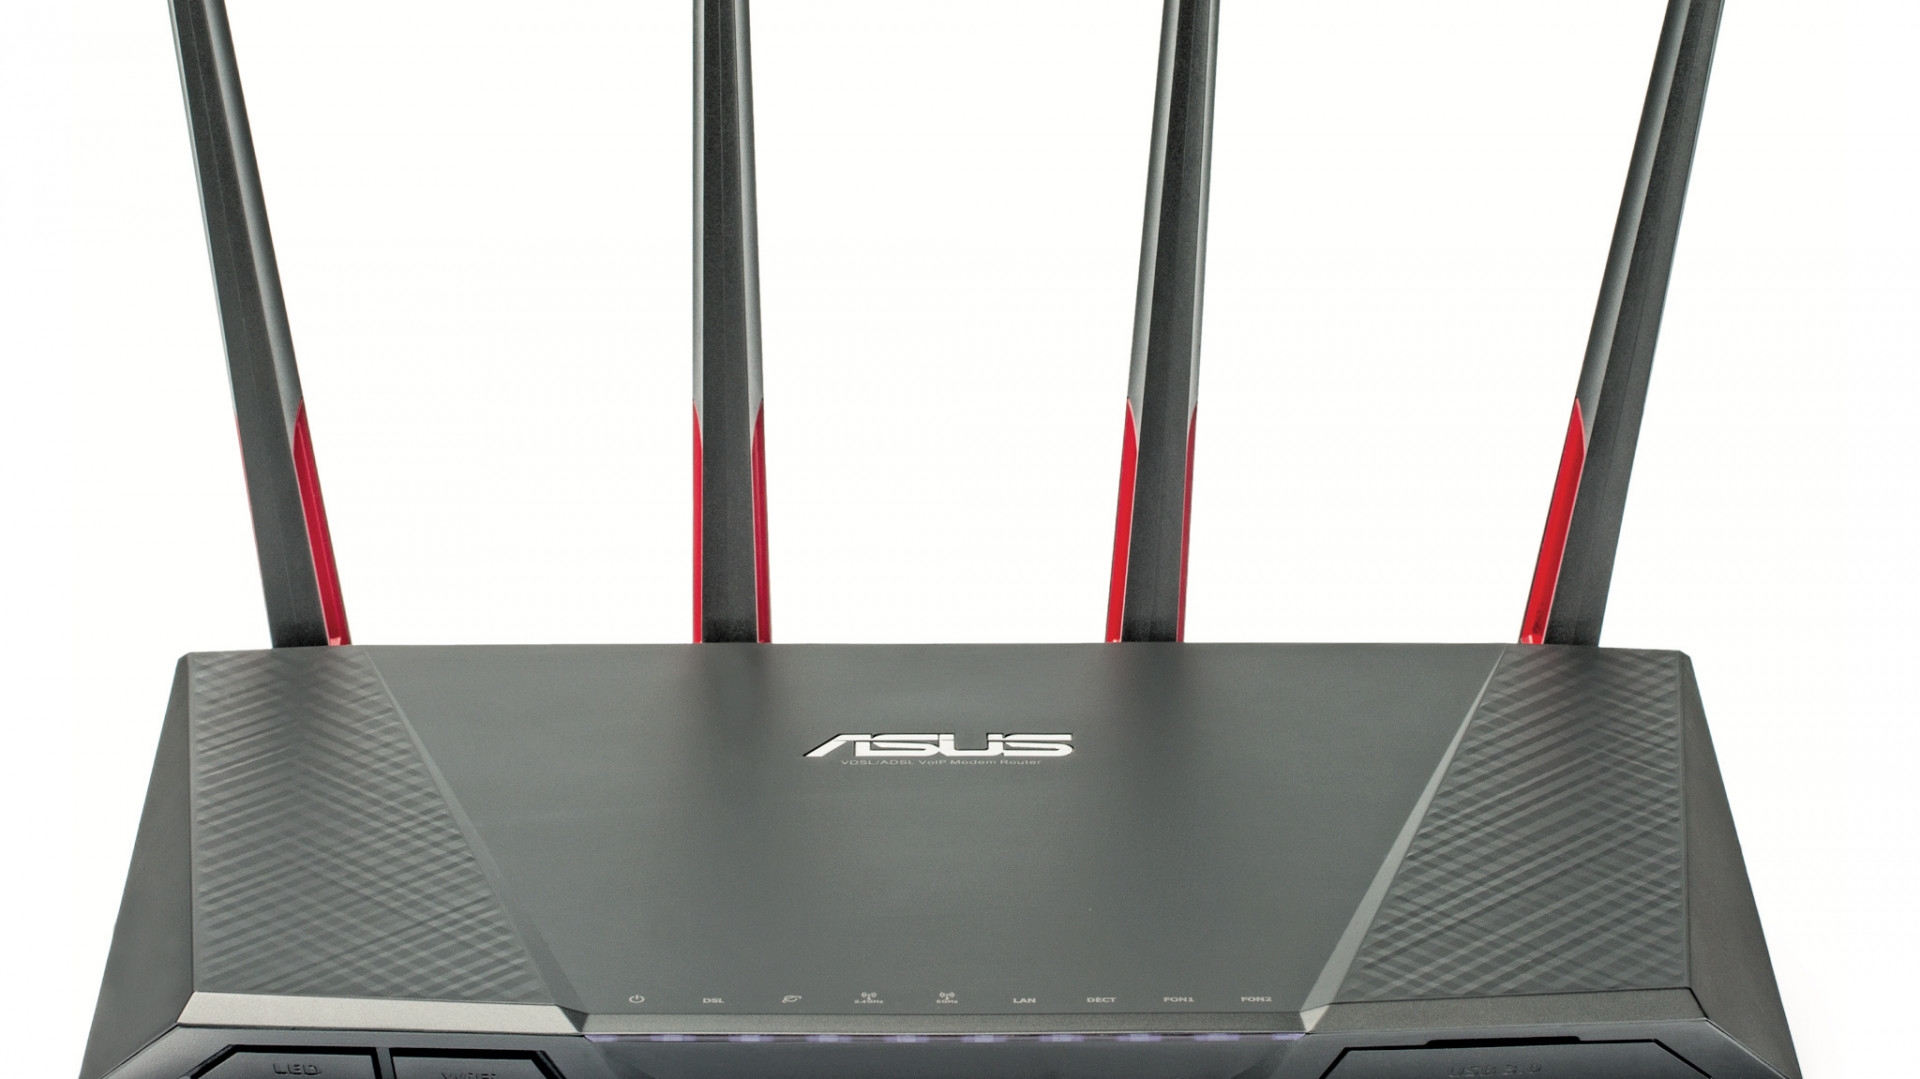 asus xdsl wlan router dsl ac68vg mit telefonie c 39 t magazin. Black Bedroom Furniture Sets. Home Design Ideas